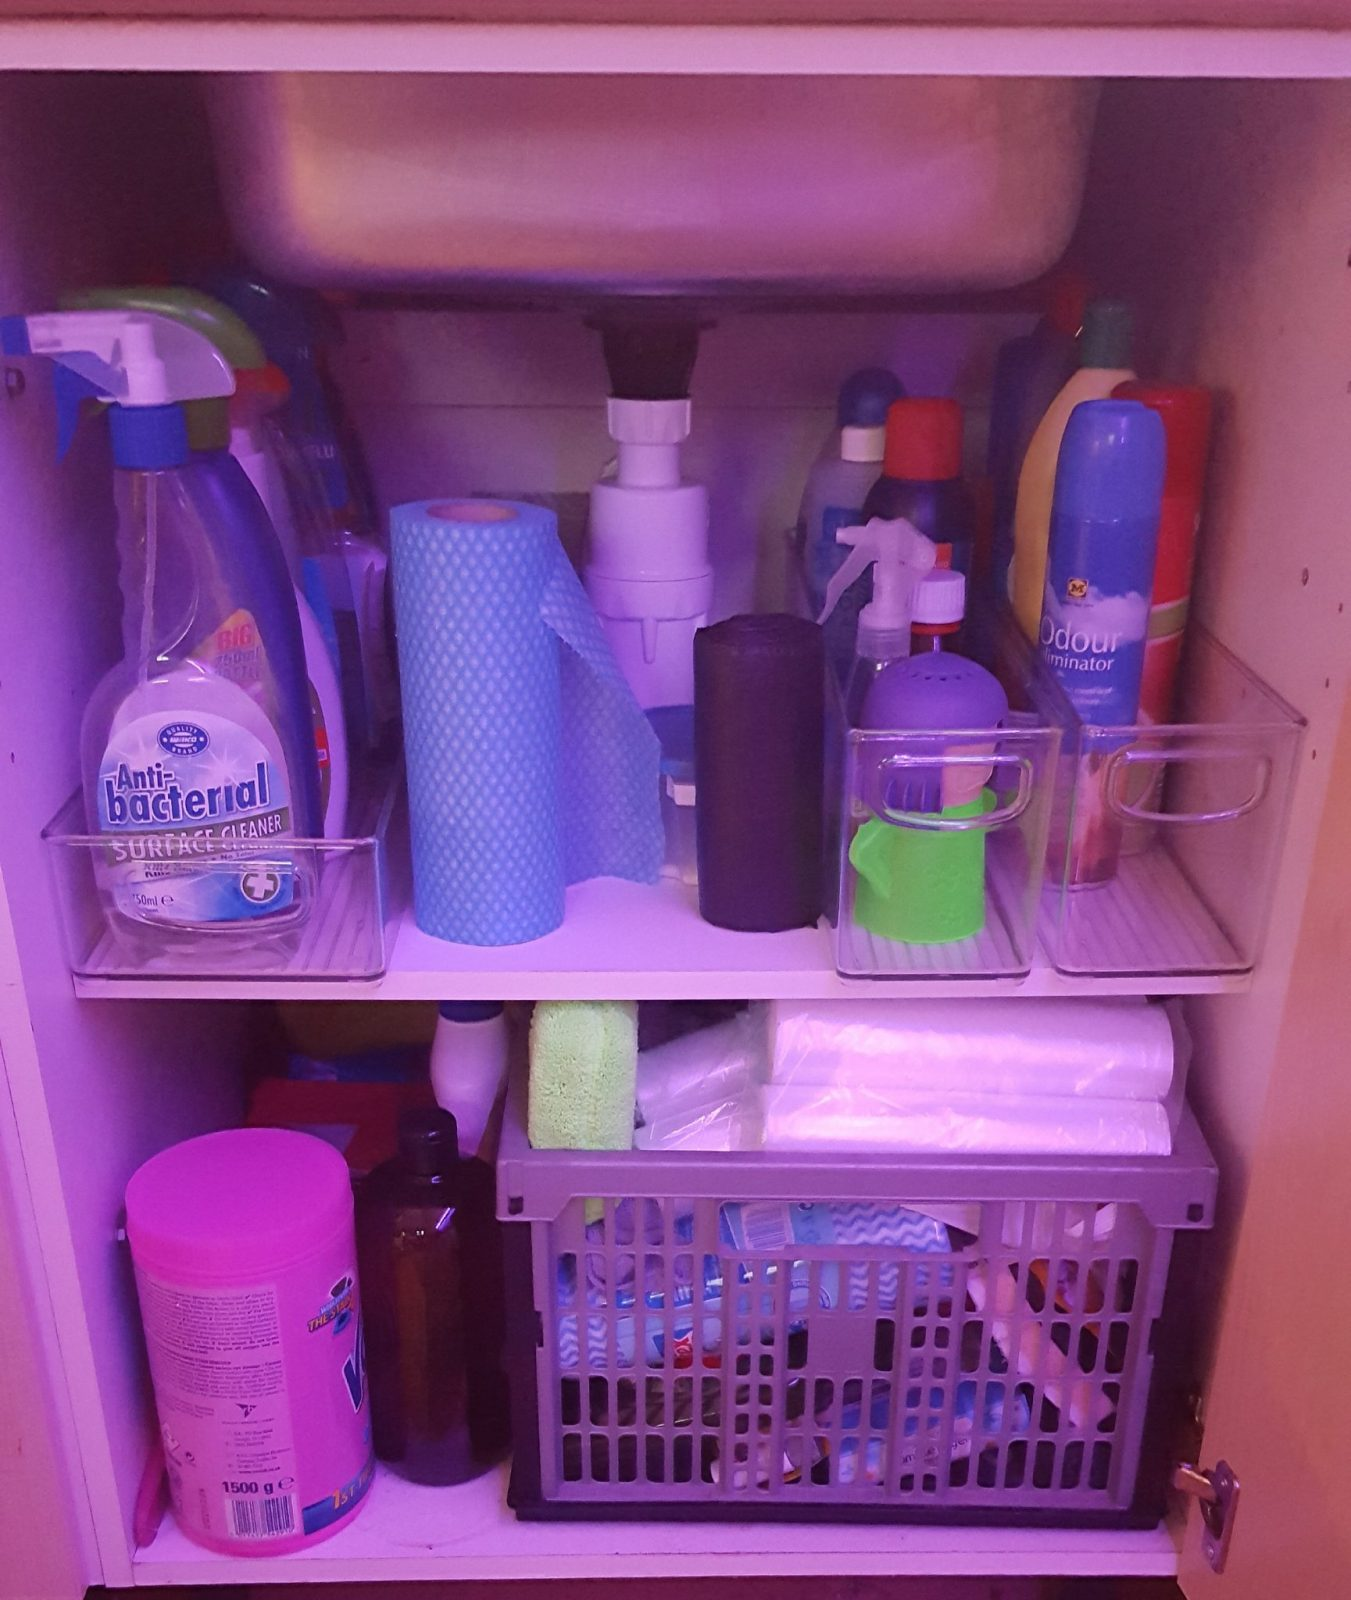 The Cupboard underneath the kitchen sink, the top shelf has been organised into containers the bottom shelf has a crate stuck in there